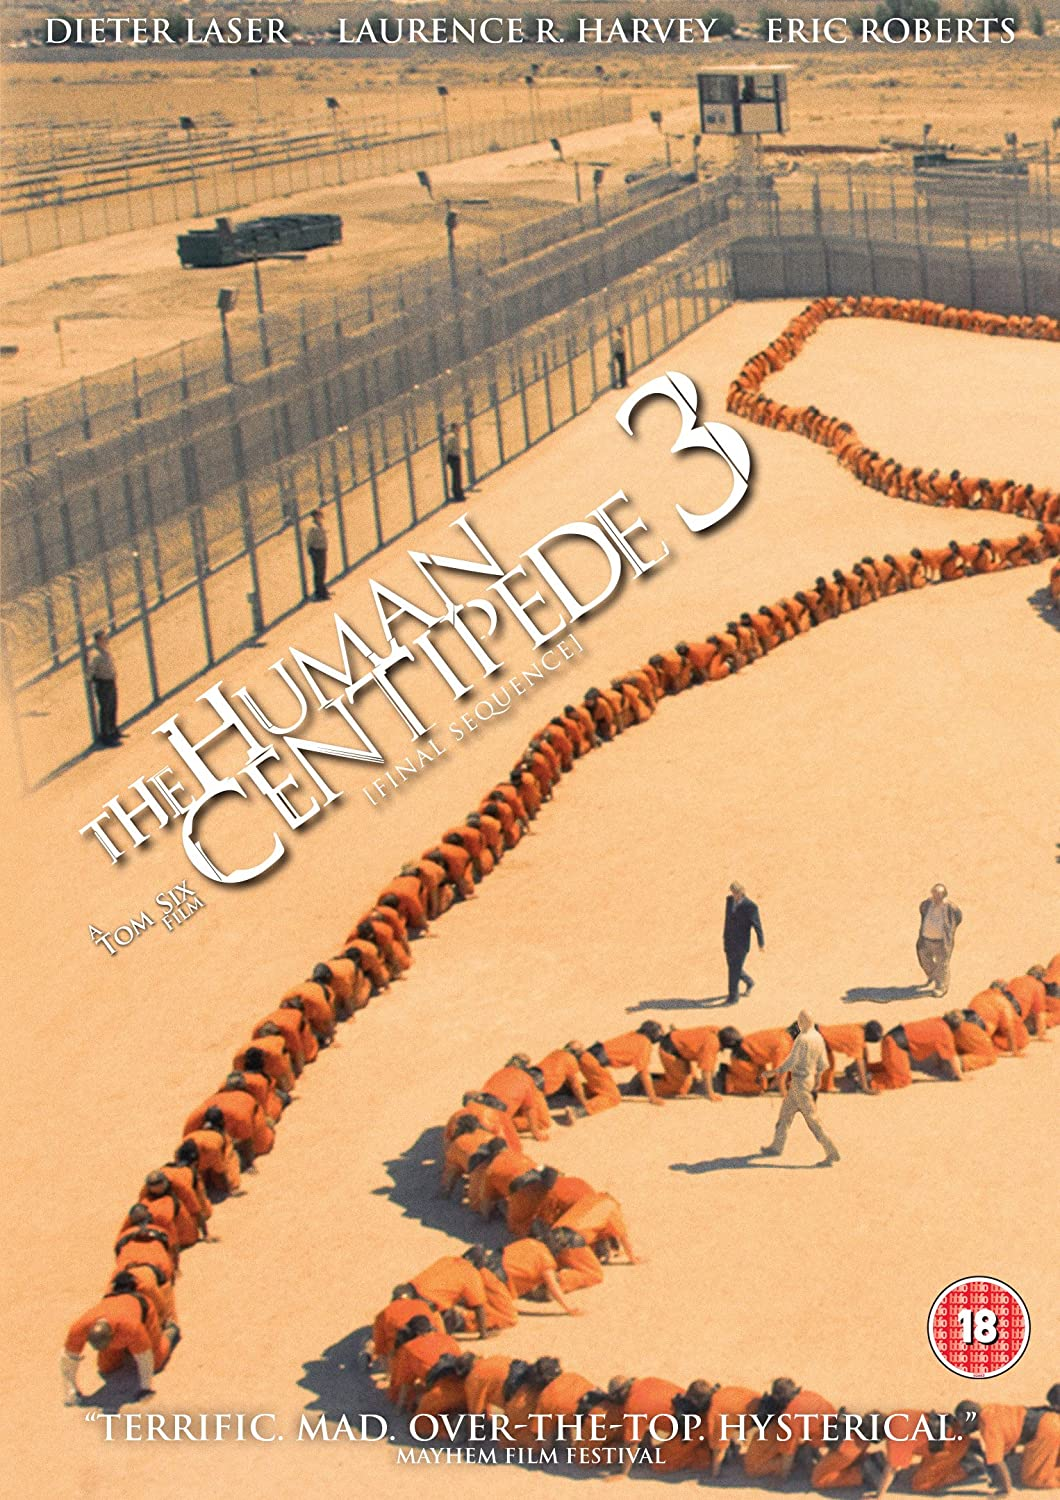 Human Centipede 3 comes to DVD and blu ray